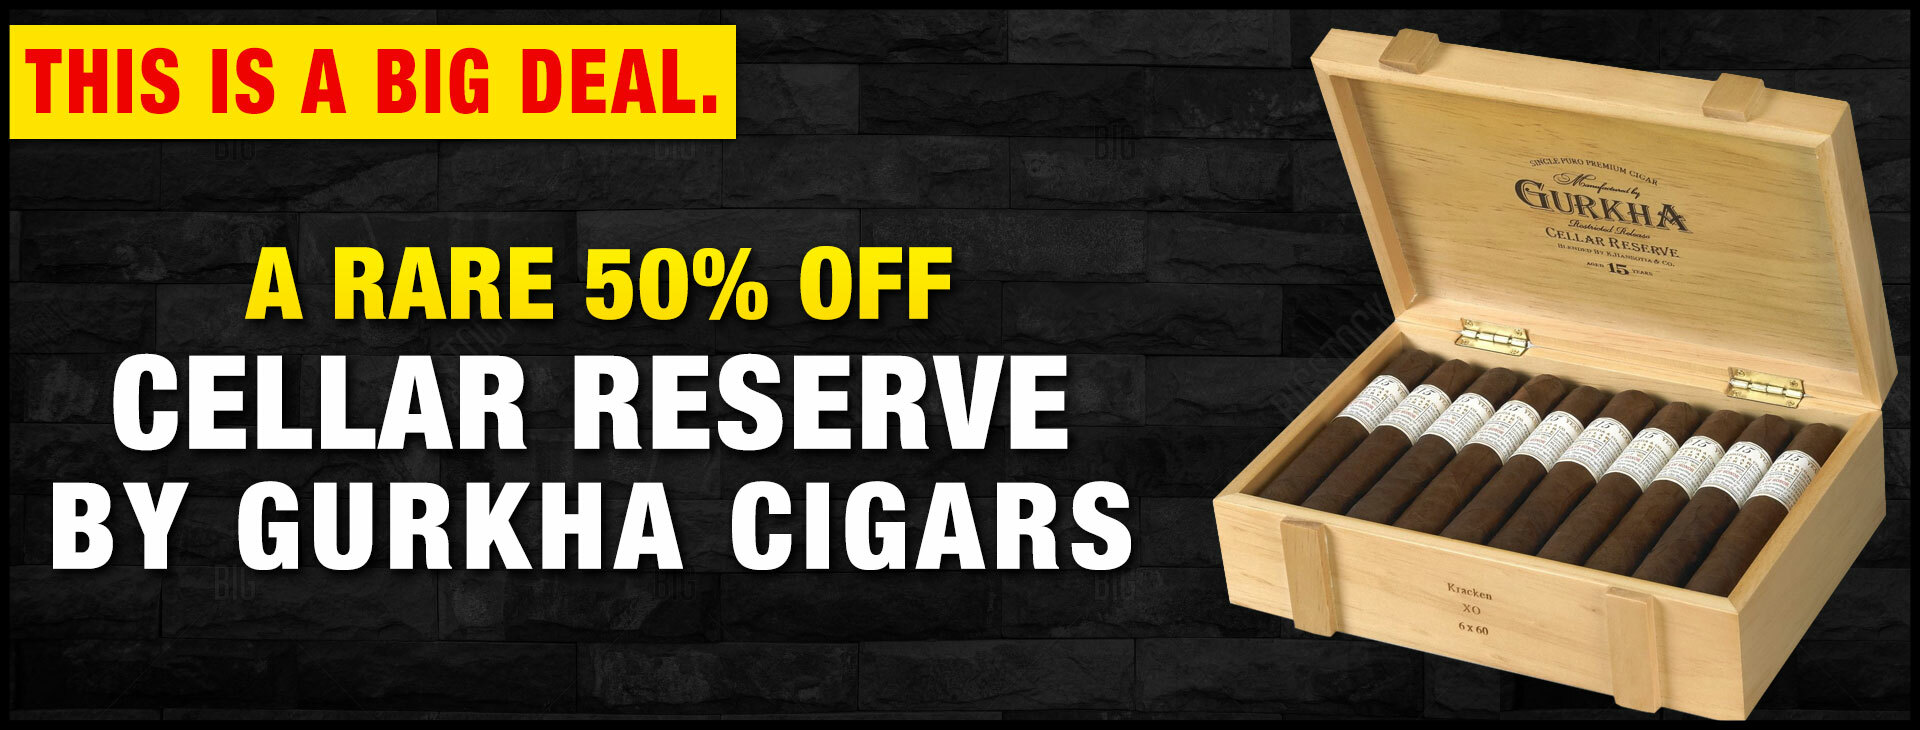 HUGE: 90-Rated Gurkha Cellar Reserve Clearance!